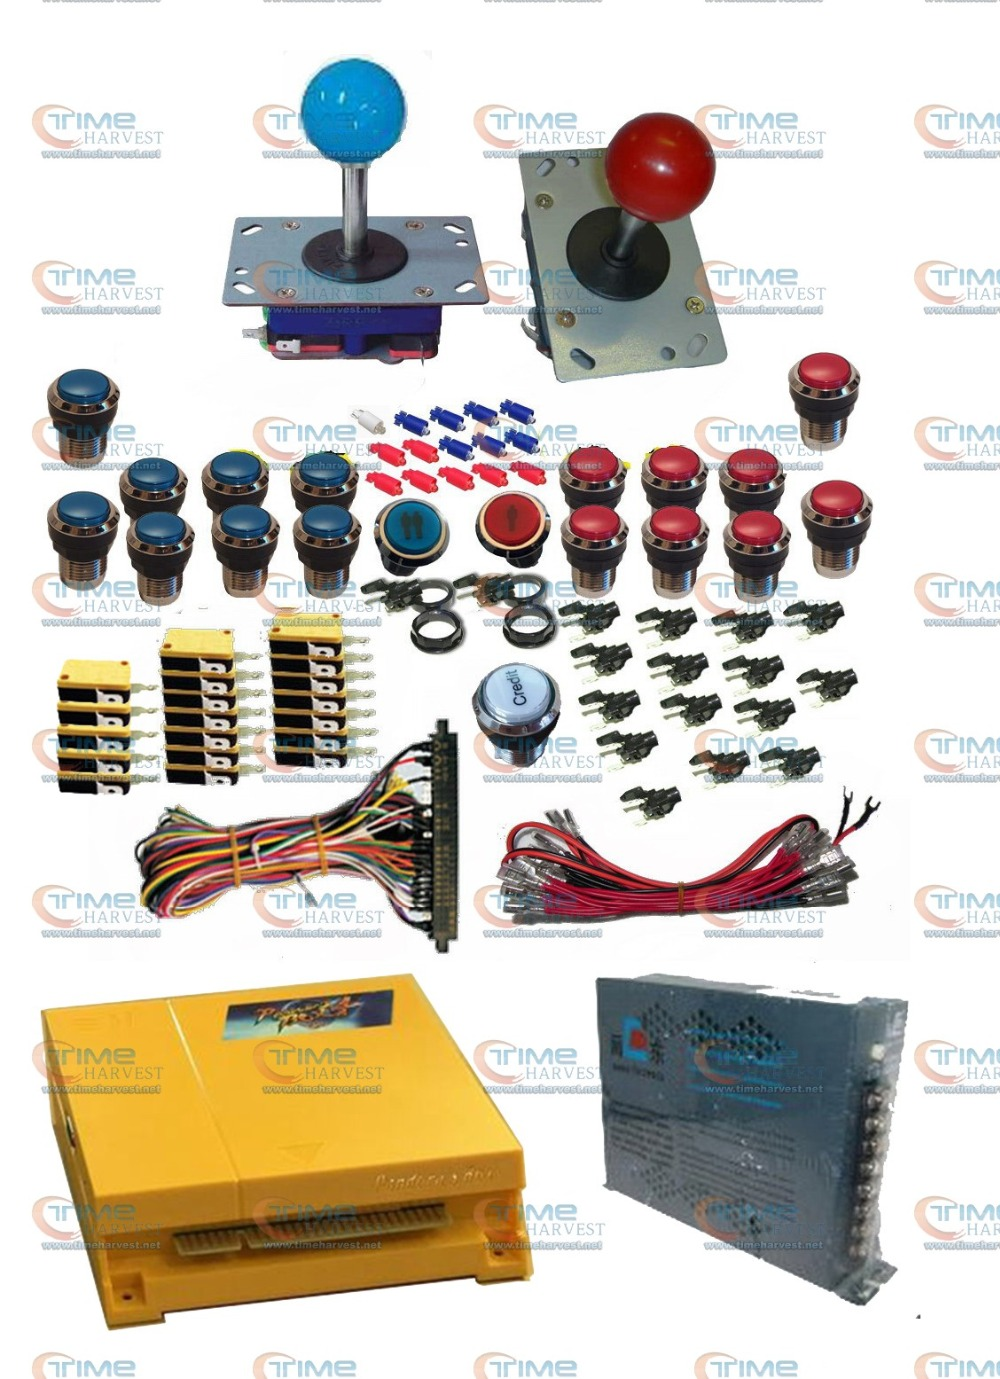 Arcade parts Bundles kit With Multi game 645 in 1 Pandora's Box 4 Joystick Chrome illuminated buttons Microswitch Jamma Harness led lights mini arcade bundle machines 645 in 1 joystick game consoles with jamma multi games pandora 4 game pcb board